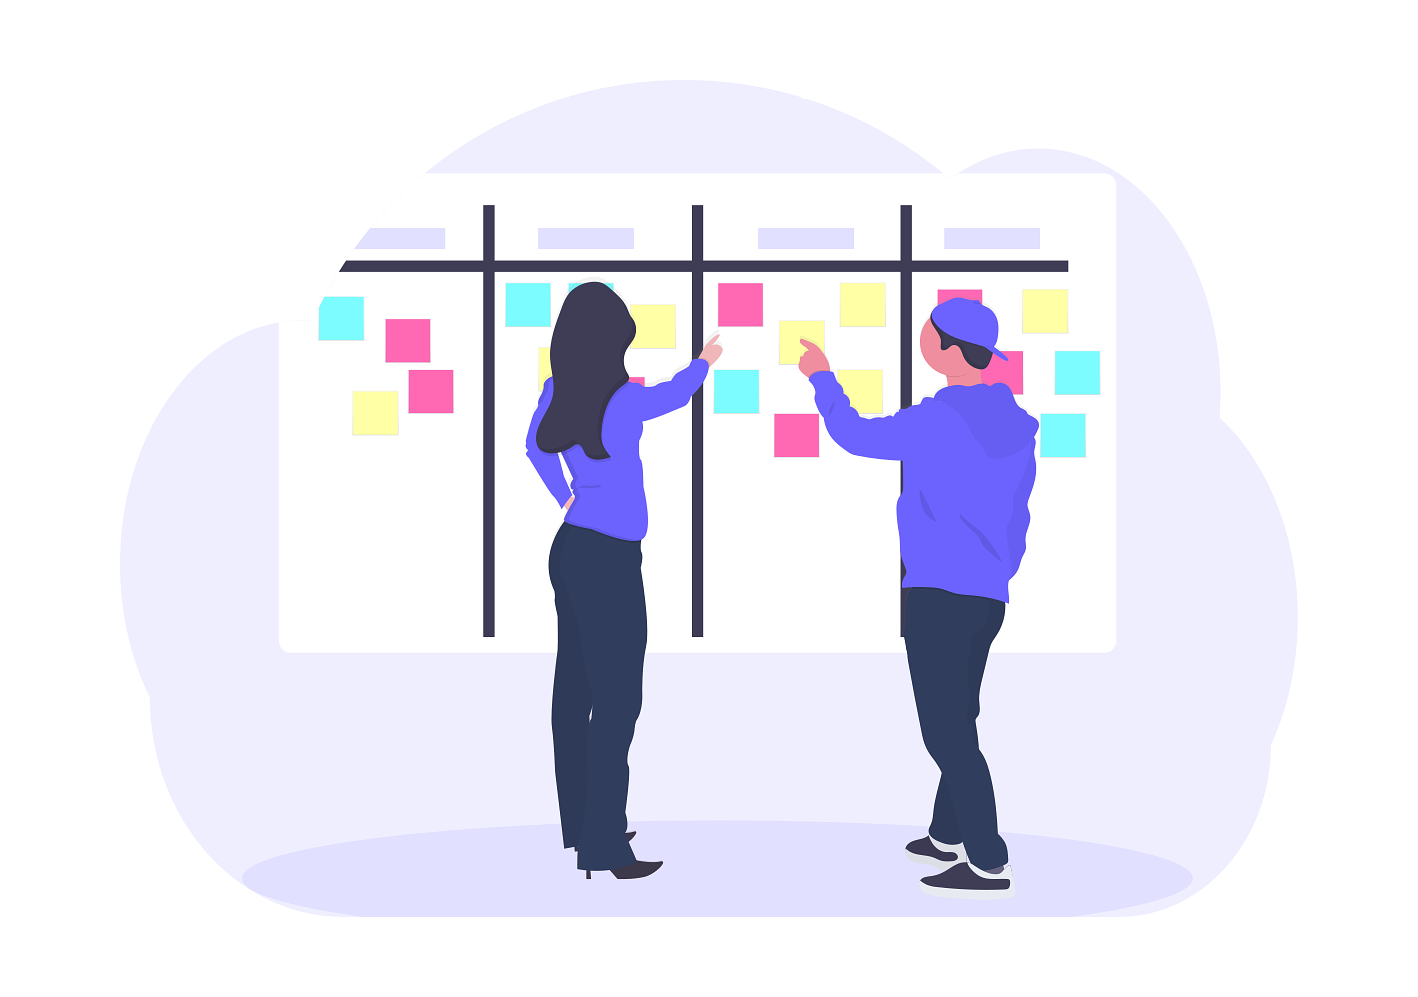 an illustration of product managers at a scrum board with sticky notes